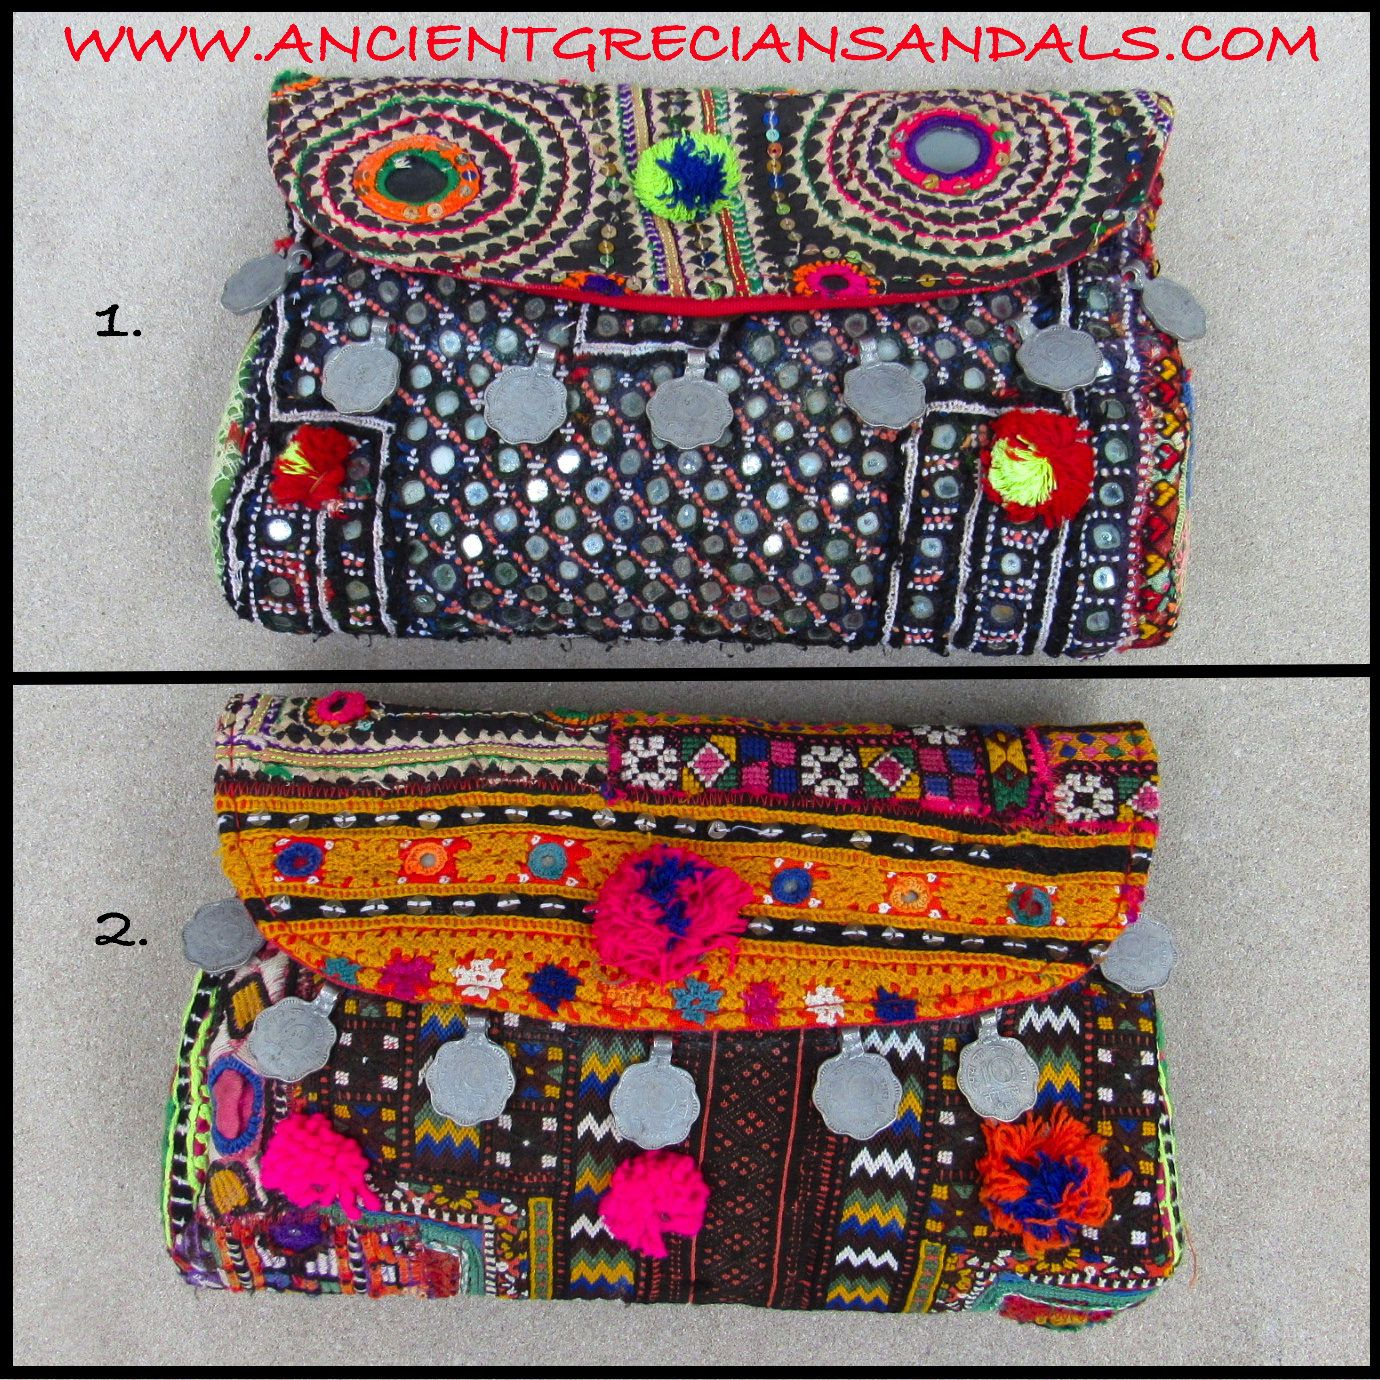 Choose from 2 stunning Vintage Banjara clutches!  Colorful Unique Indian Banjara bag with pom poms, rustic ethnic fabrics, coin charms and braided leather straps.  No 2 of these clutches are alike!  Fully lined with zipper closure!  Size : Apx. 10' x 6.5 inches 25 x 16 centimeters